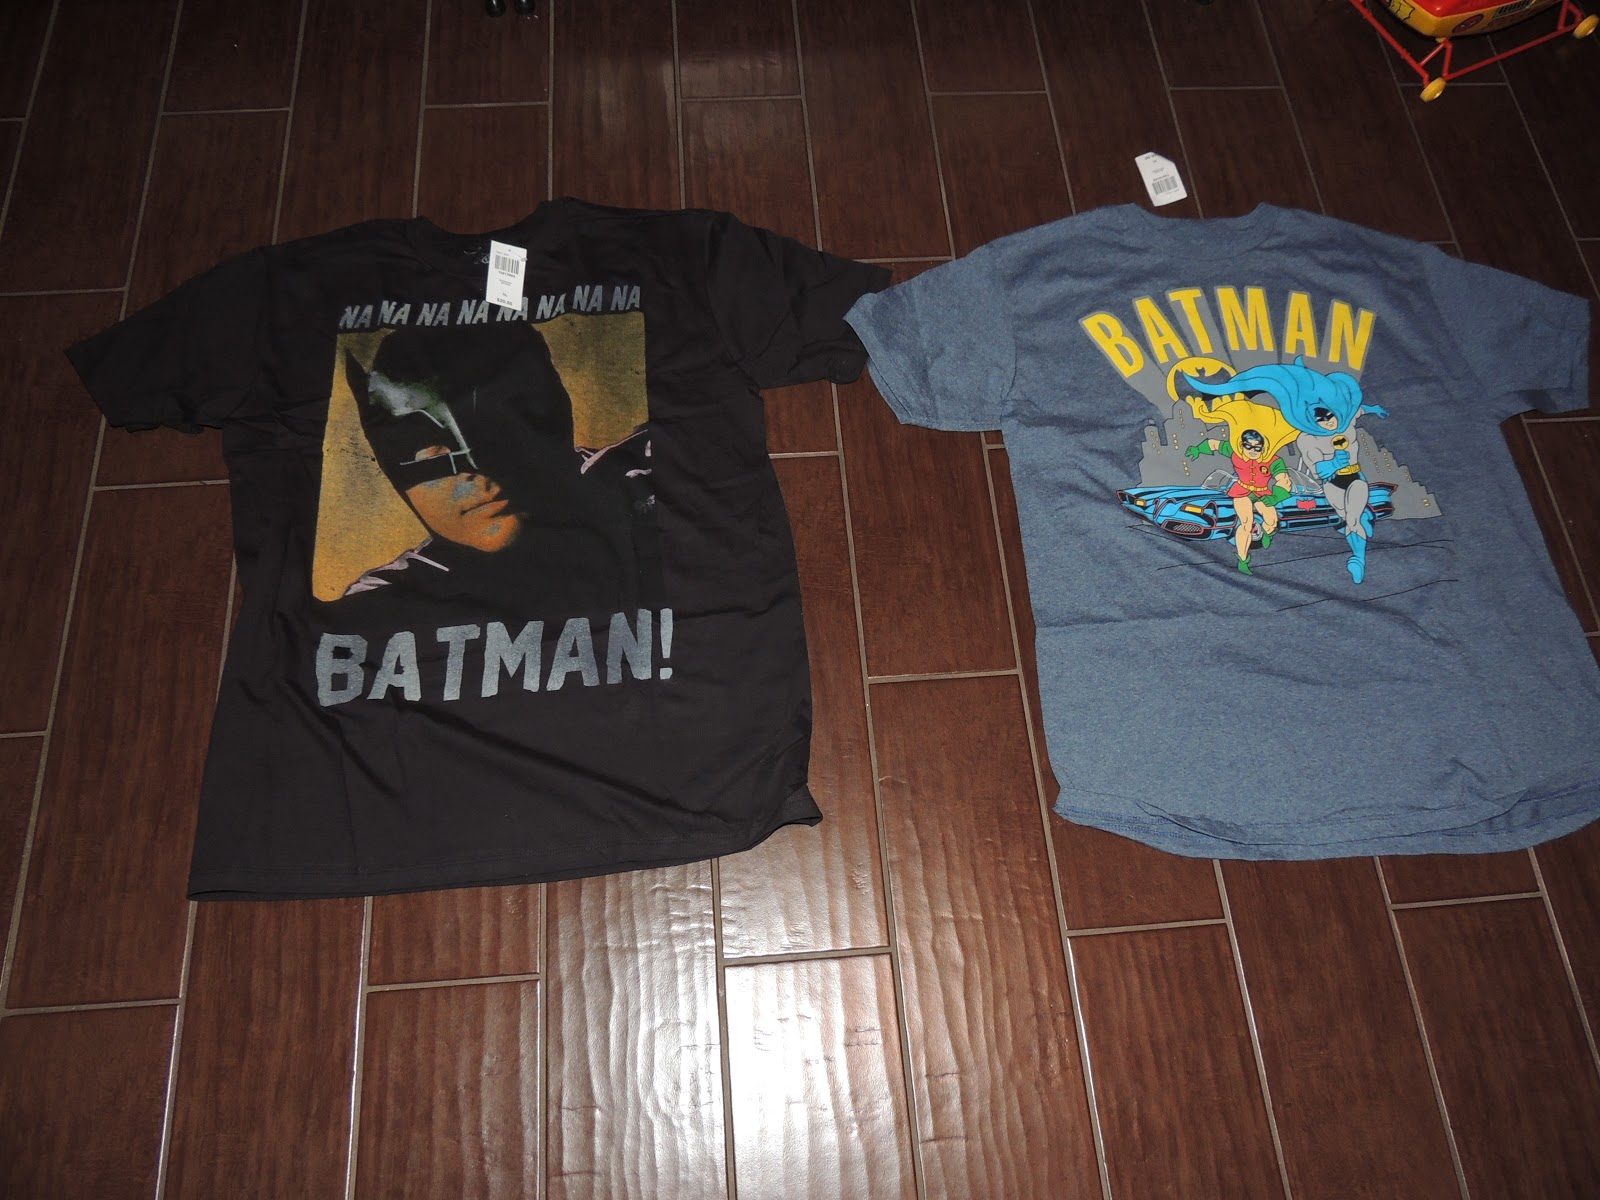 f1fc01135785 Batcave Toy Room - Better Living Through Toy Collecting: Batman TV Series  T-shirts At Hot Topic Buy One, Get One Half Off